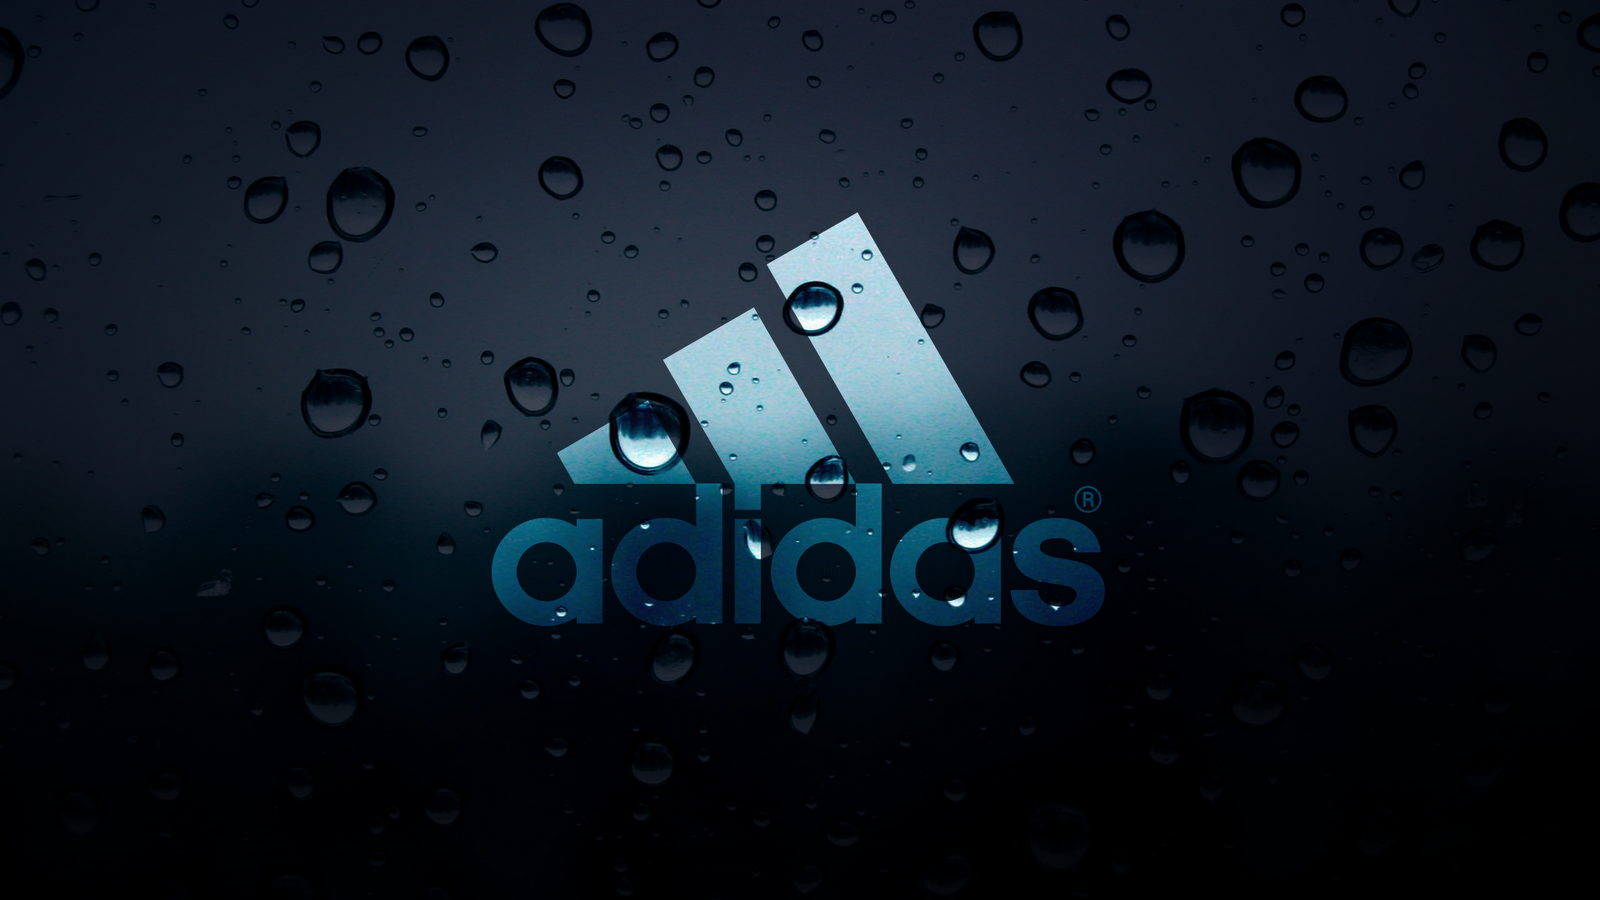 Adidas Wallpaper is a Great Way to Make Your Desktop Unique